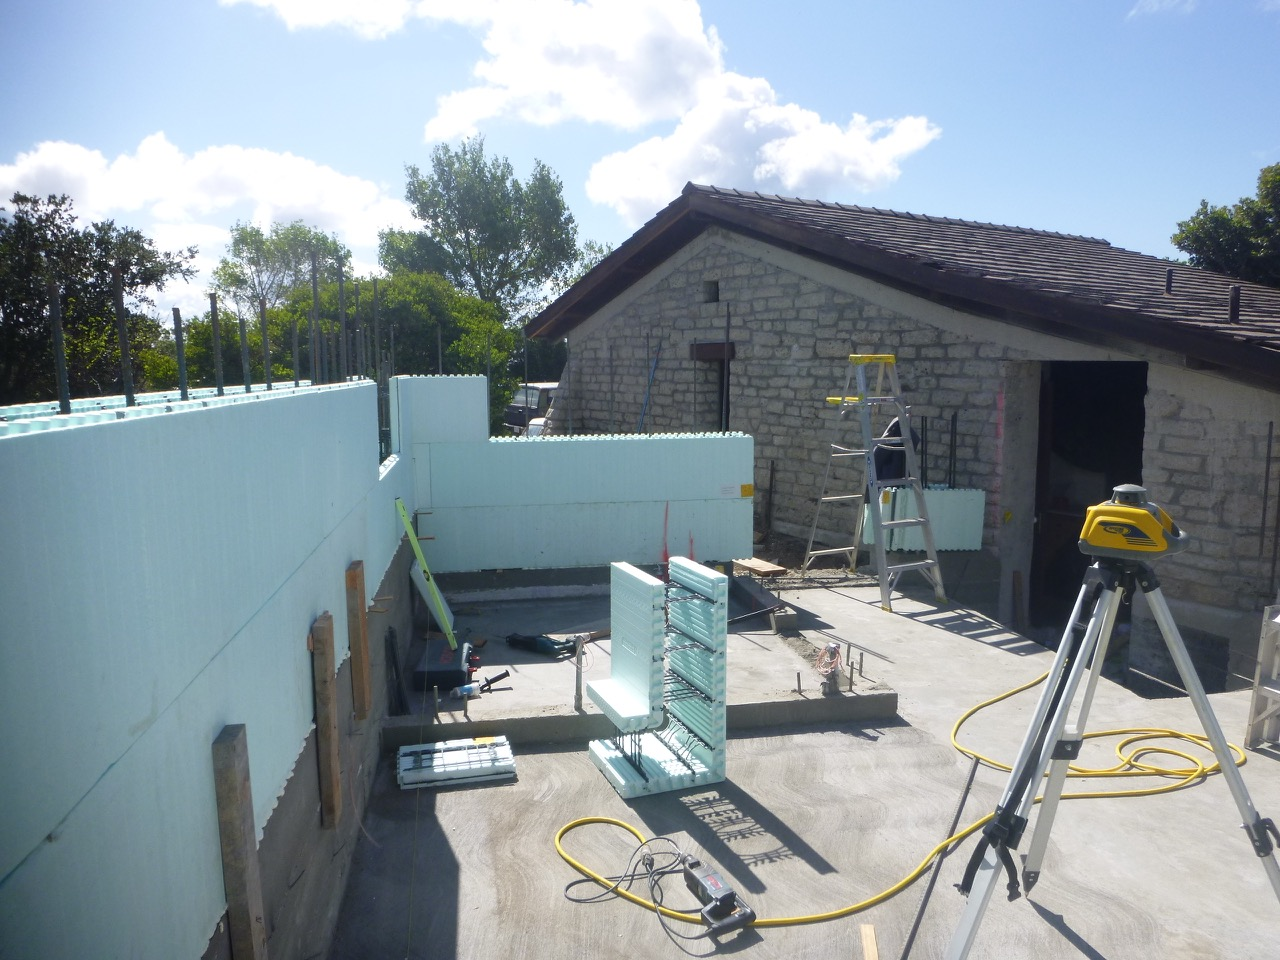 Insulated concrete forms &radiant solar heated floor form the core of thisaddition